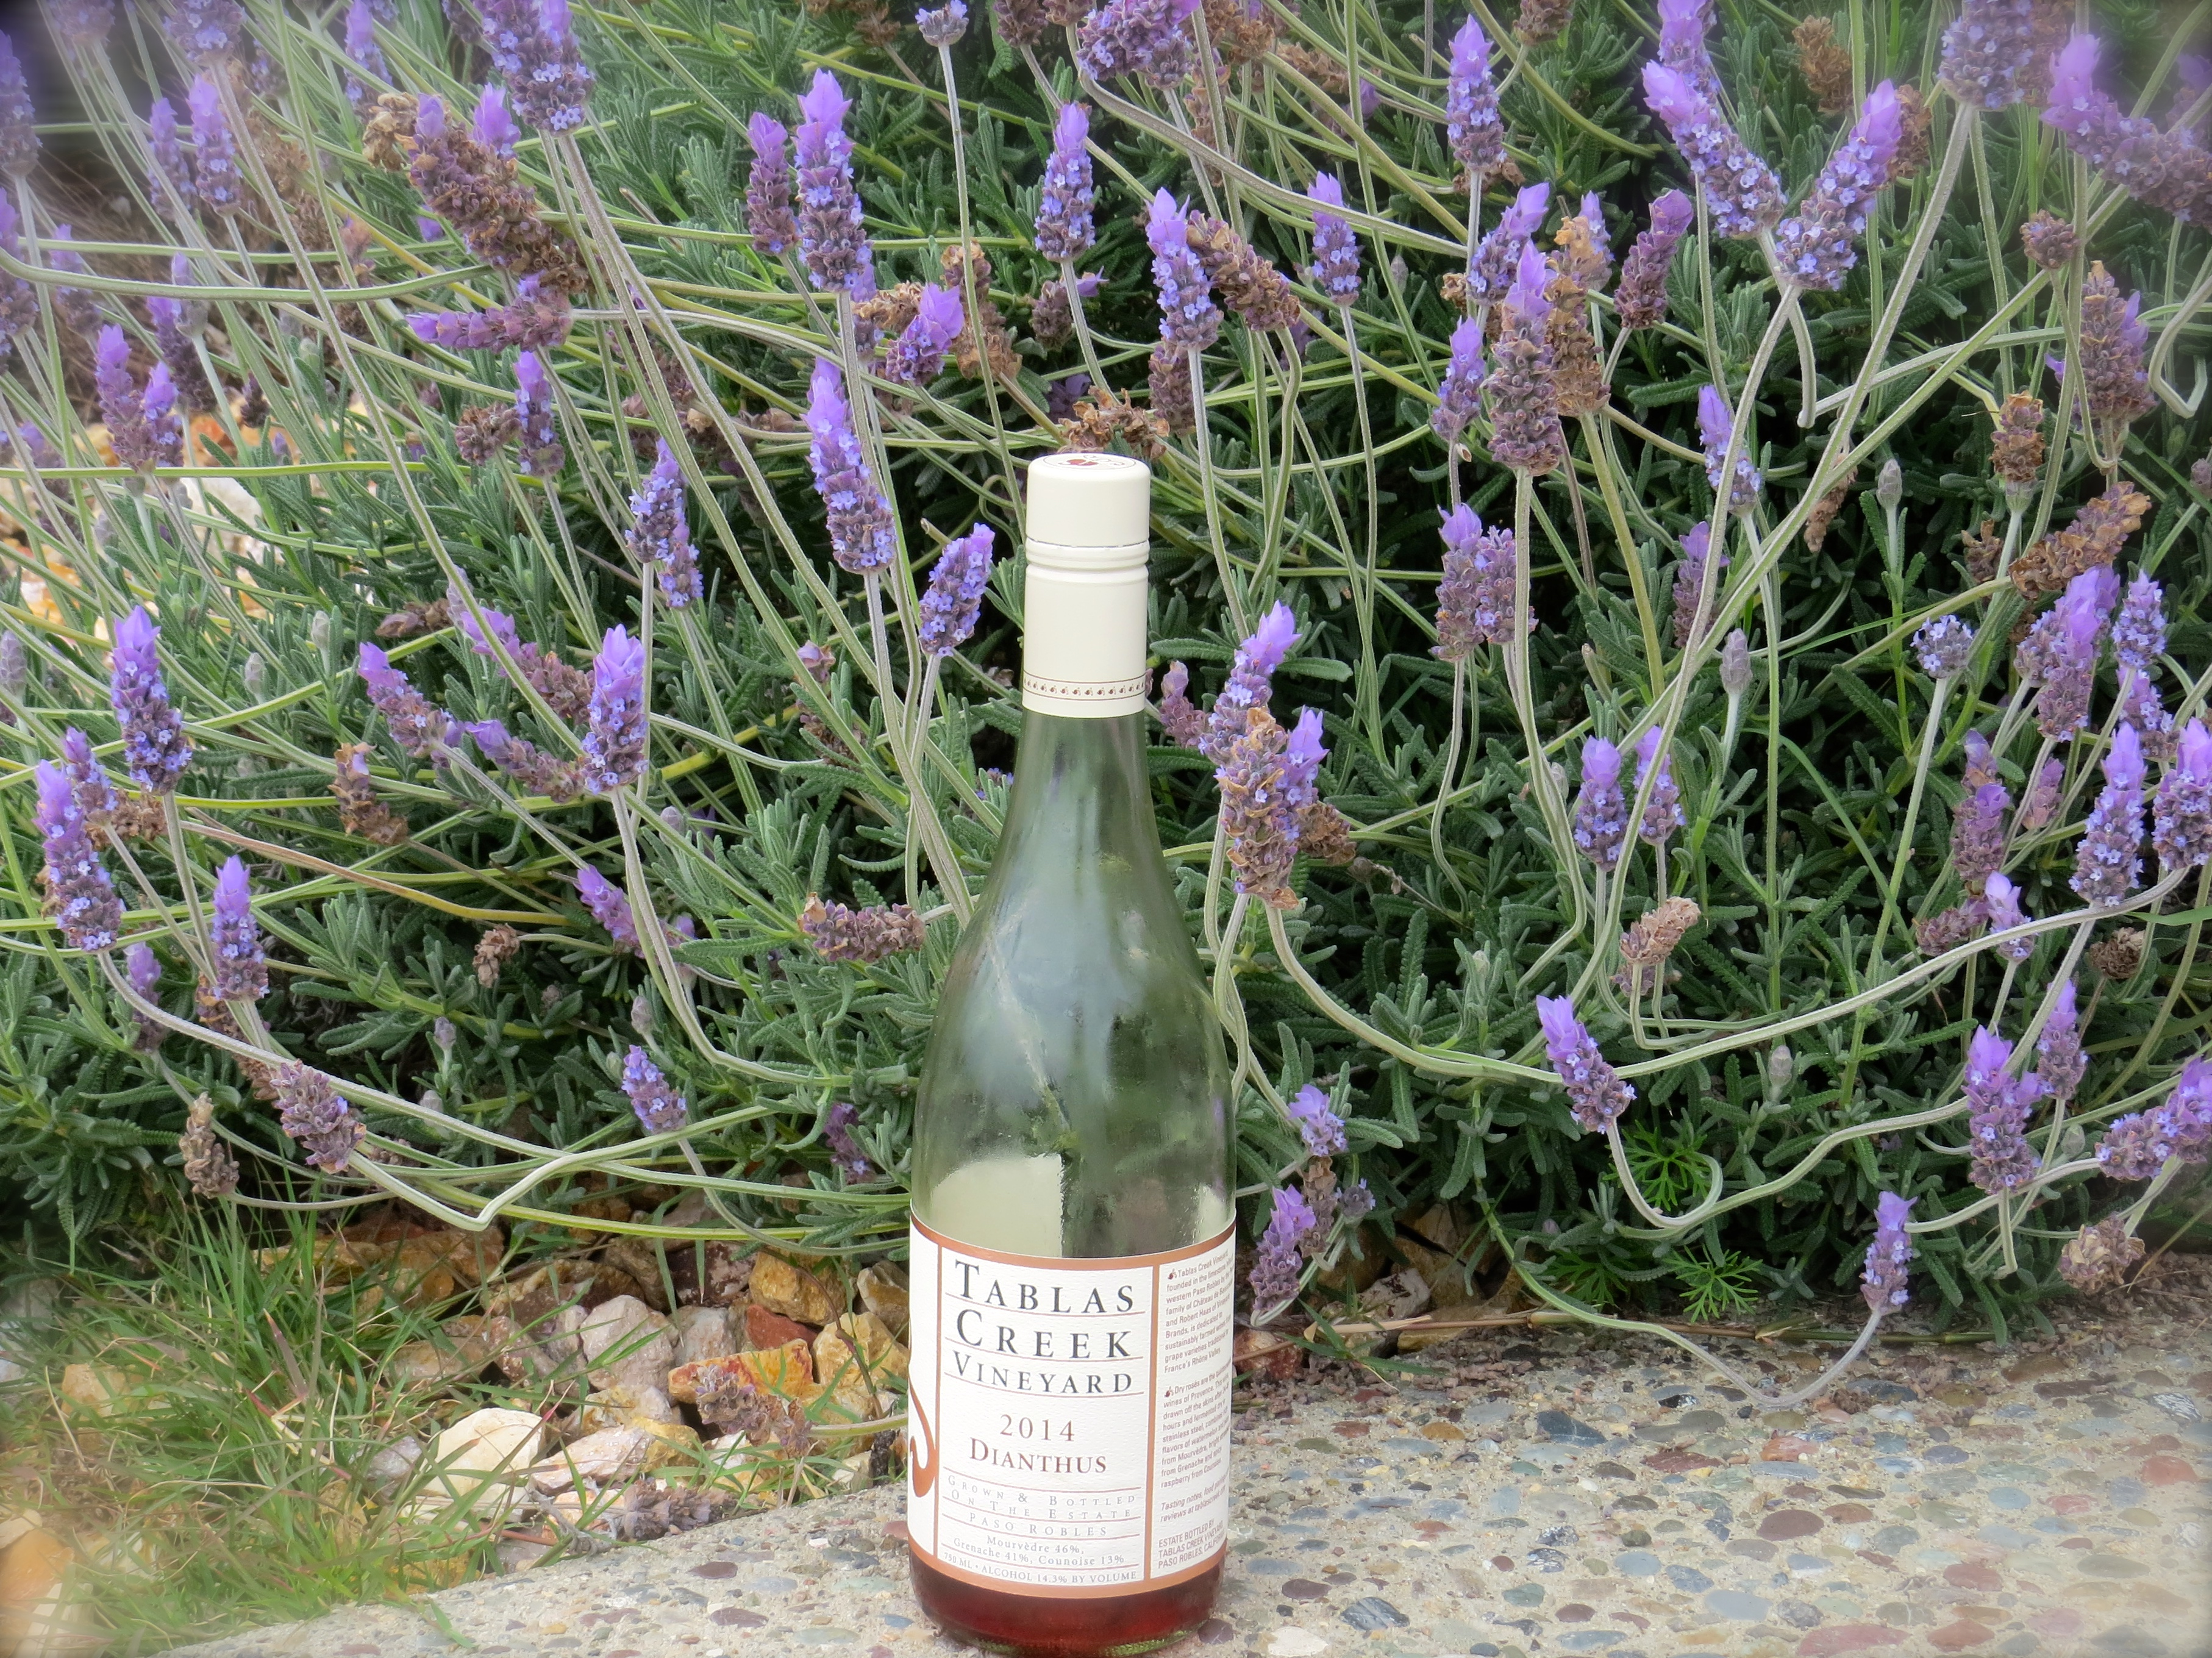 We forced ourselves to drink more wine. This  is a Mourvedre-based dry rosé called Dianthus 2014 by Tablas Creek Vineyard.